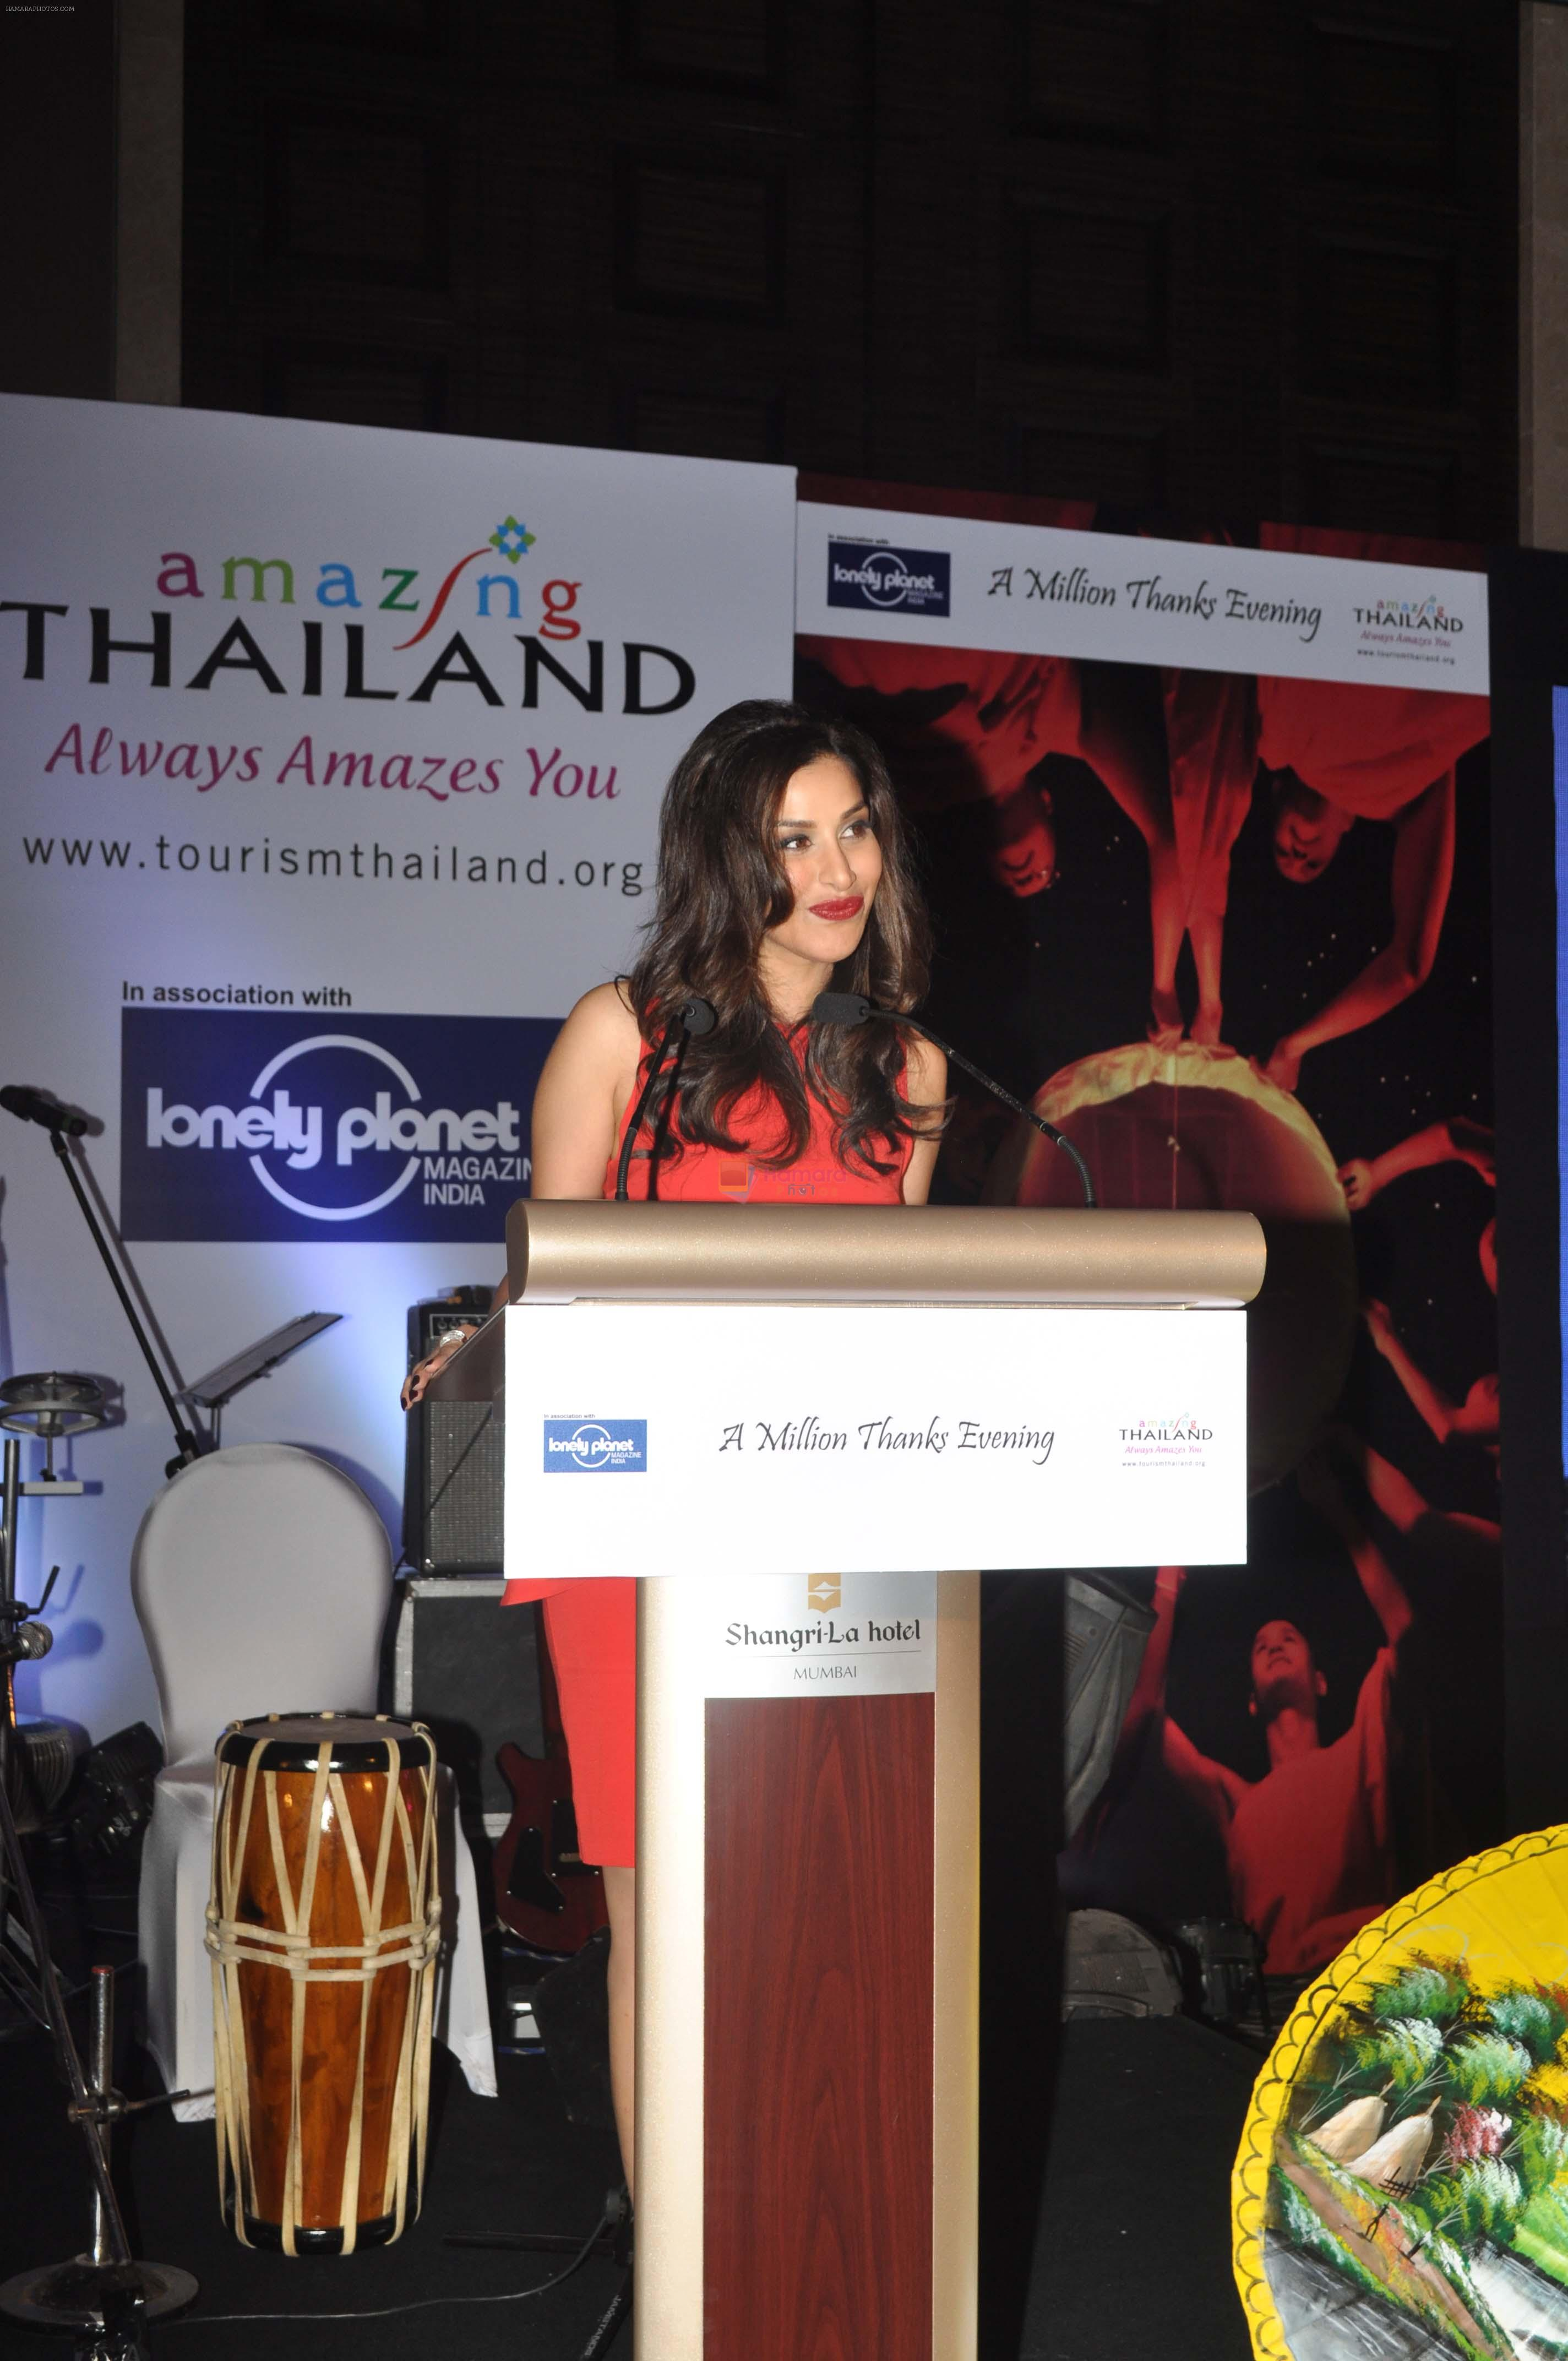 Sophie Chaudhary at A Million Thanks Evening Event Presented by Lonely Planet & Thailand Tourism at Shangri La in Mumbai on 22nd March 2013